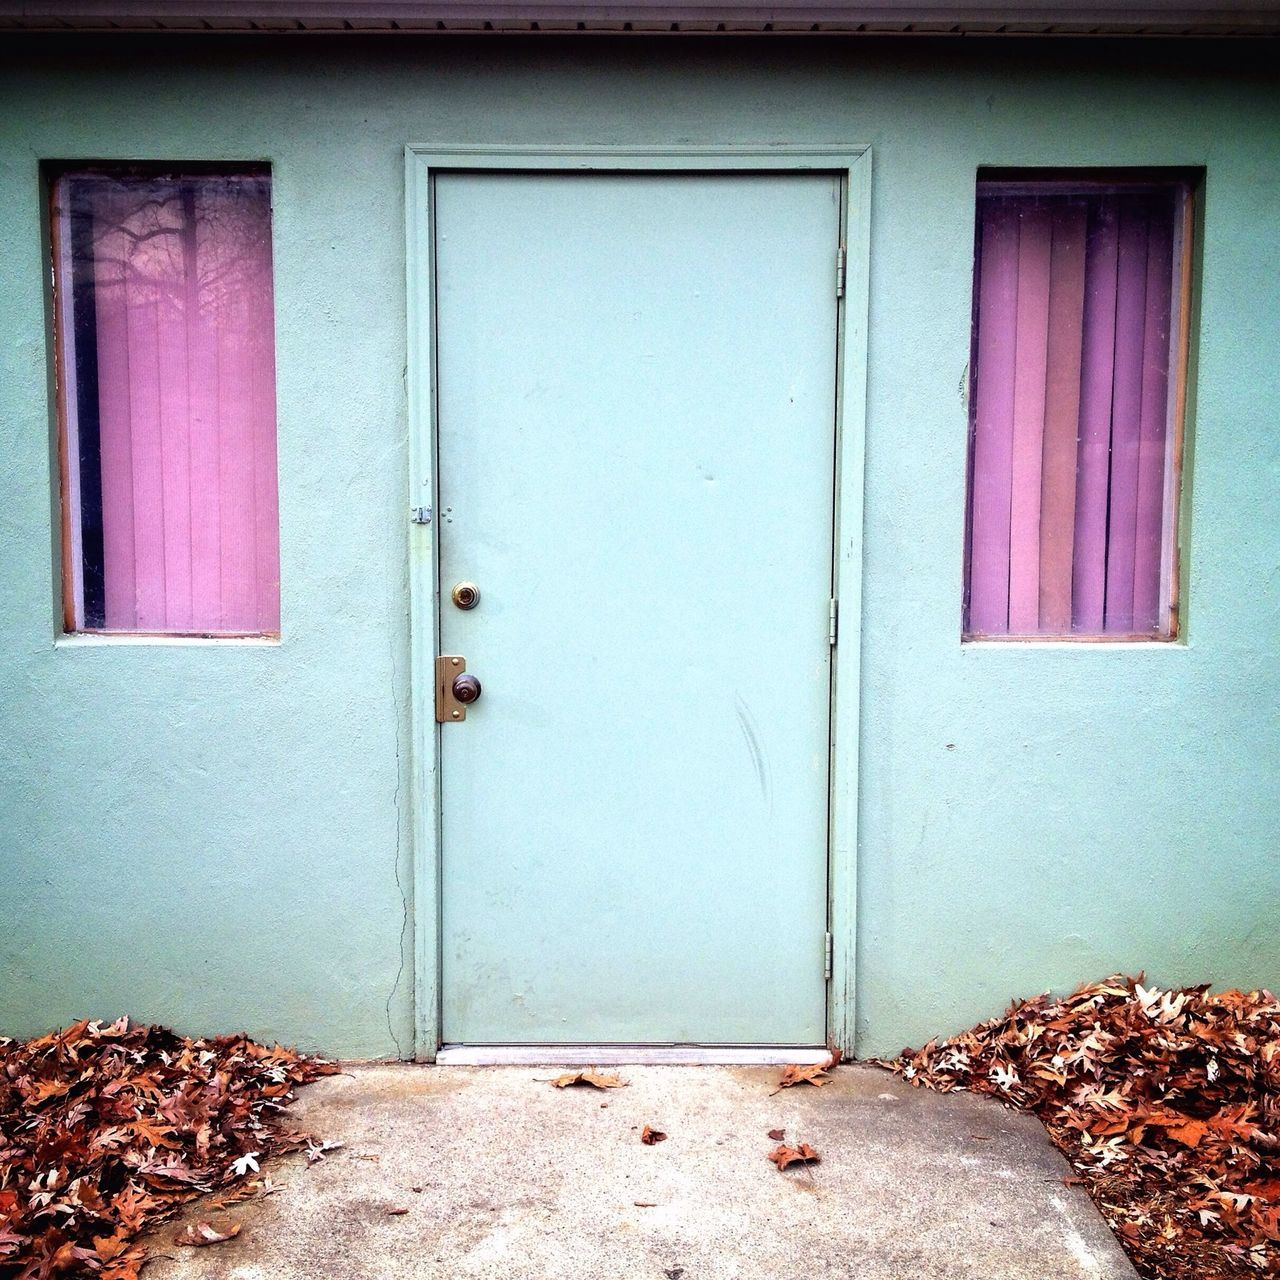 I found this weird little spot the other day. This is a door to a small town's water treatment plant. The pastels creeped me out a bit. Colors EyeEm Best Shots Shots Fltrlive EyeEm New Jersey IPhoneography